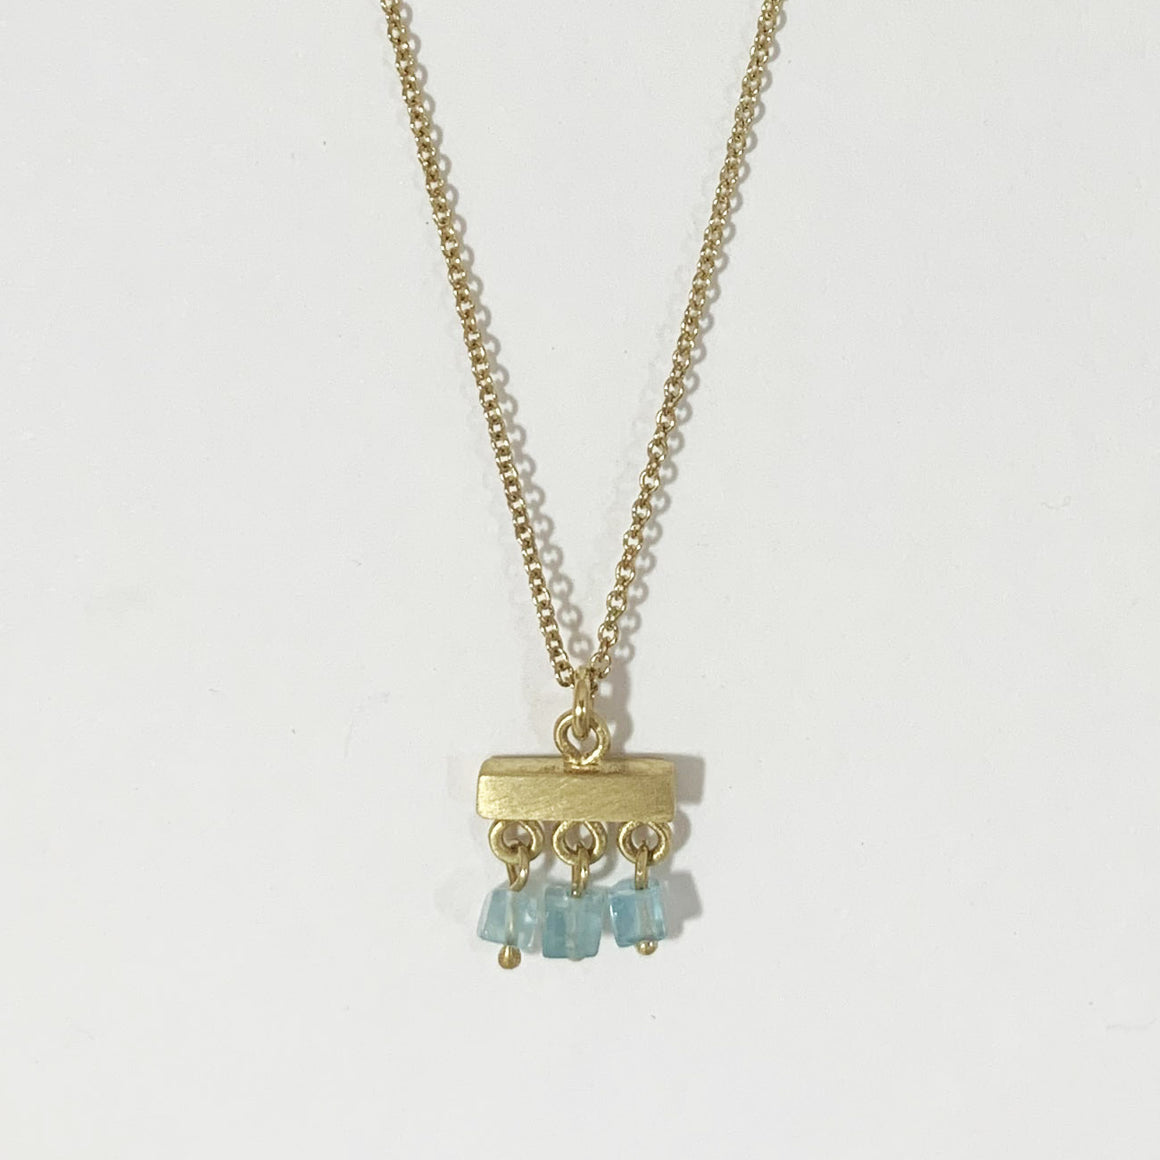 Single Tier Pendant w/Spinel Aqua bBeads in 14k Vermeil Finish